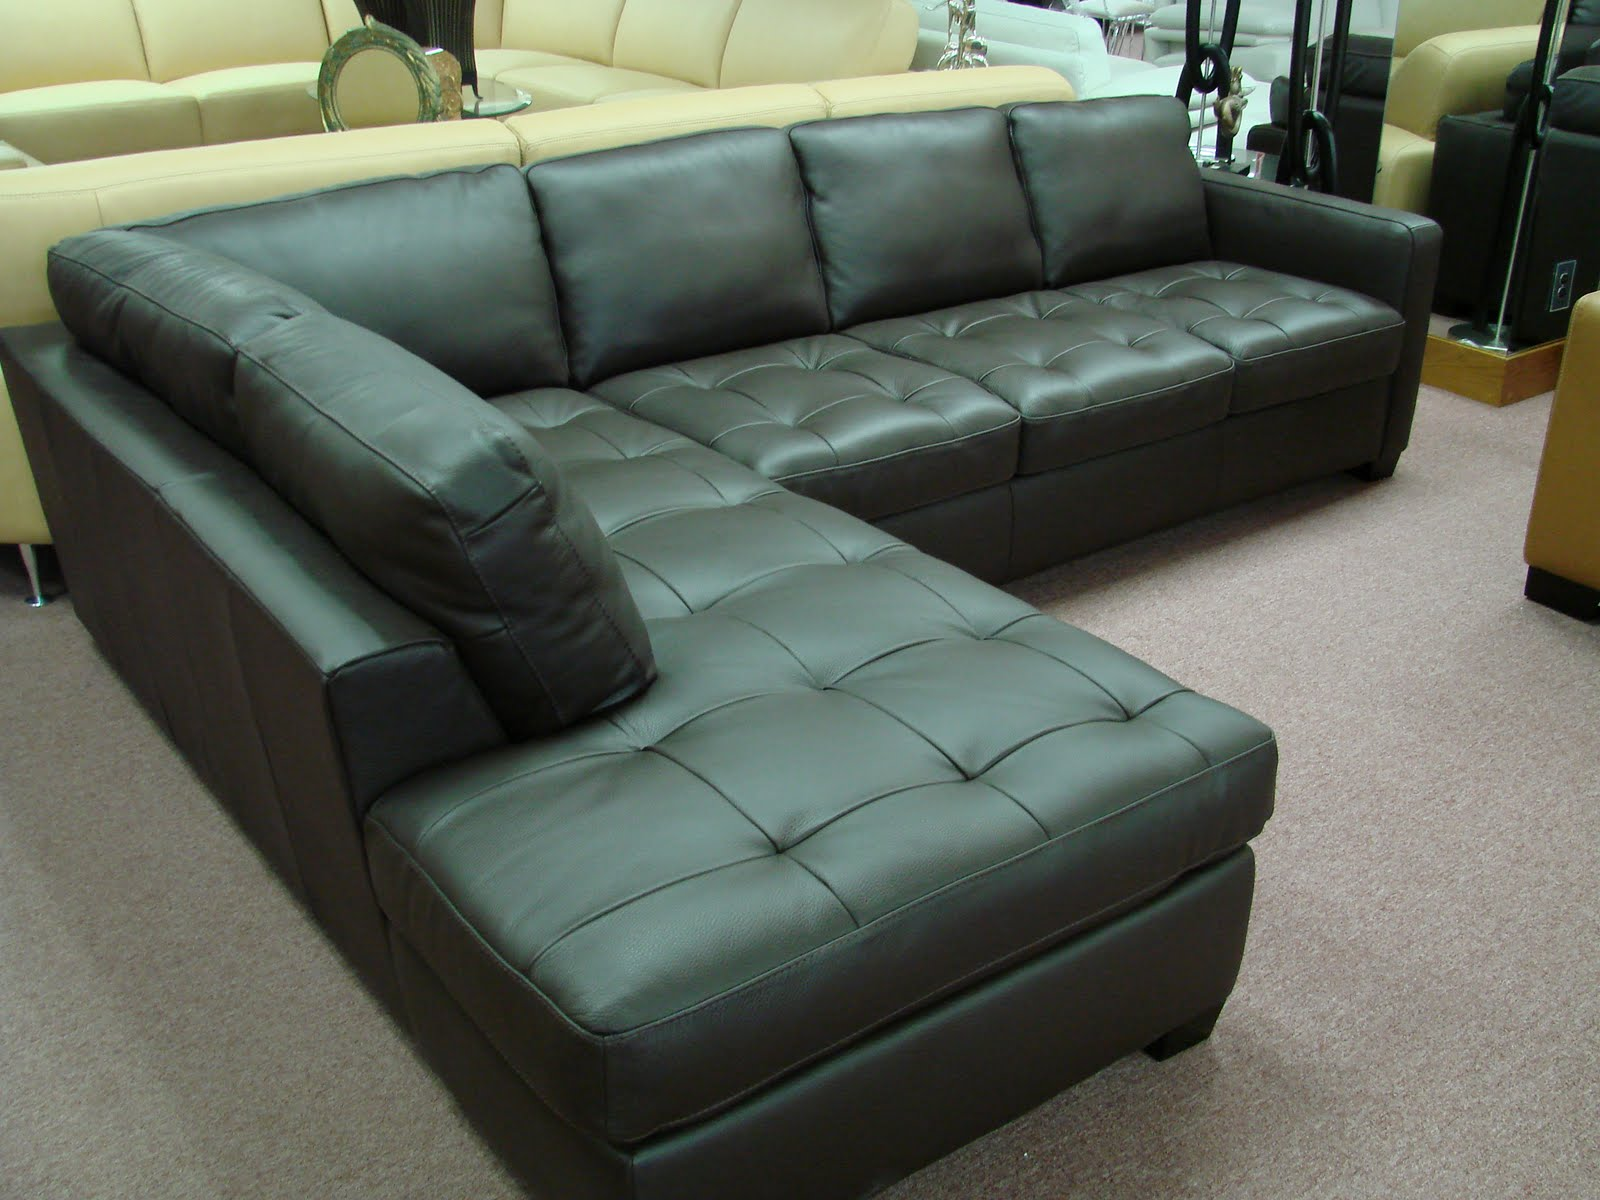 Italsofa Loveseat How To Remove Stain From White Leather Sofa Natuzzi Sofas And Sectionals By Interior Concepts